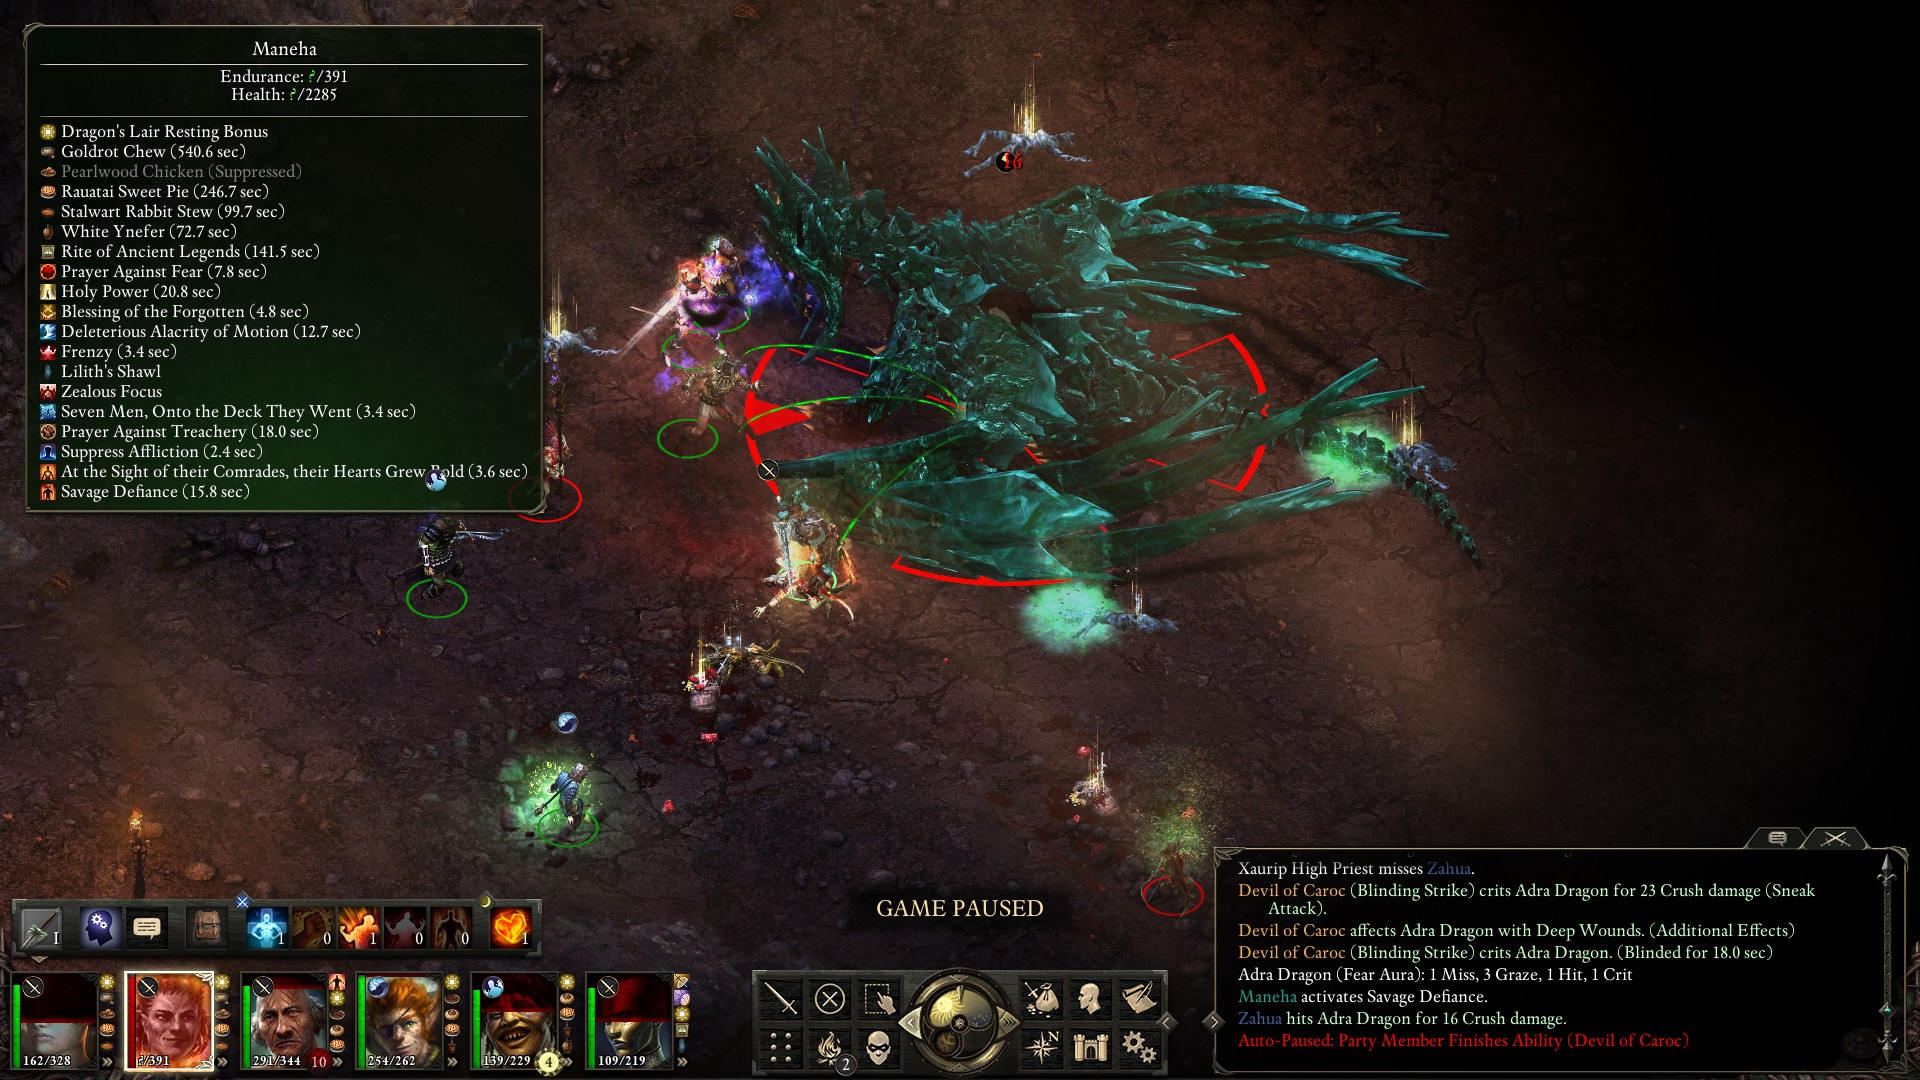 How to kill Adra Dragon - Pillars of Eternity: General Discussion